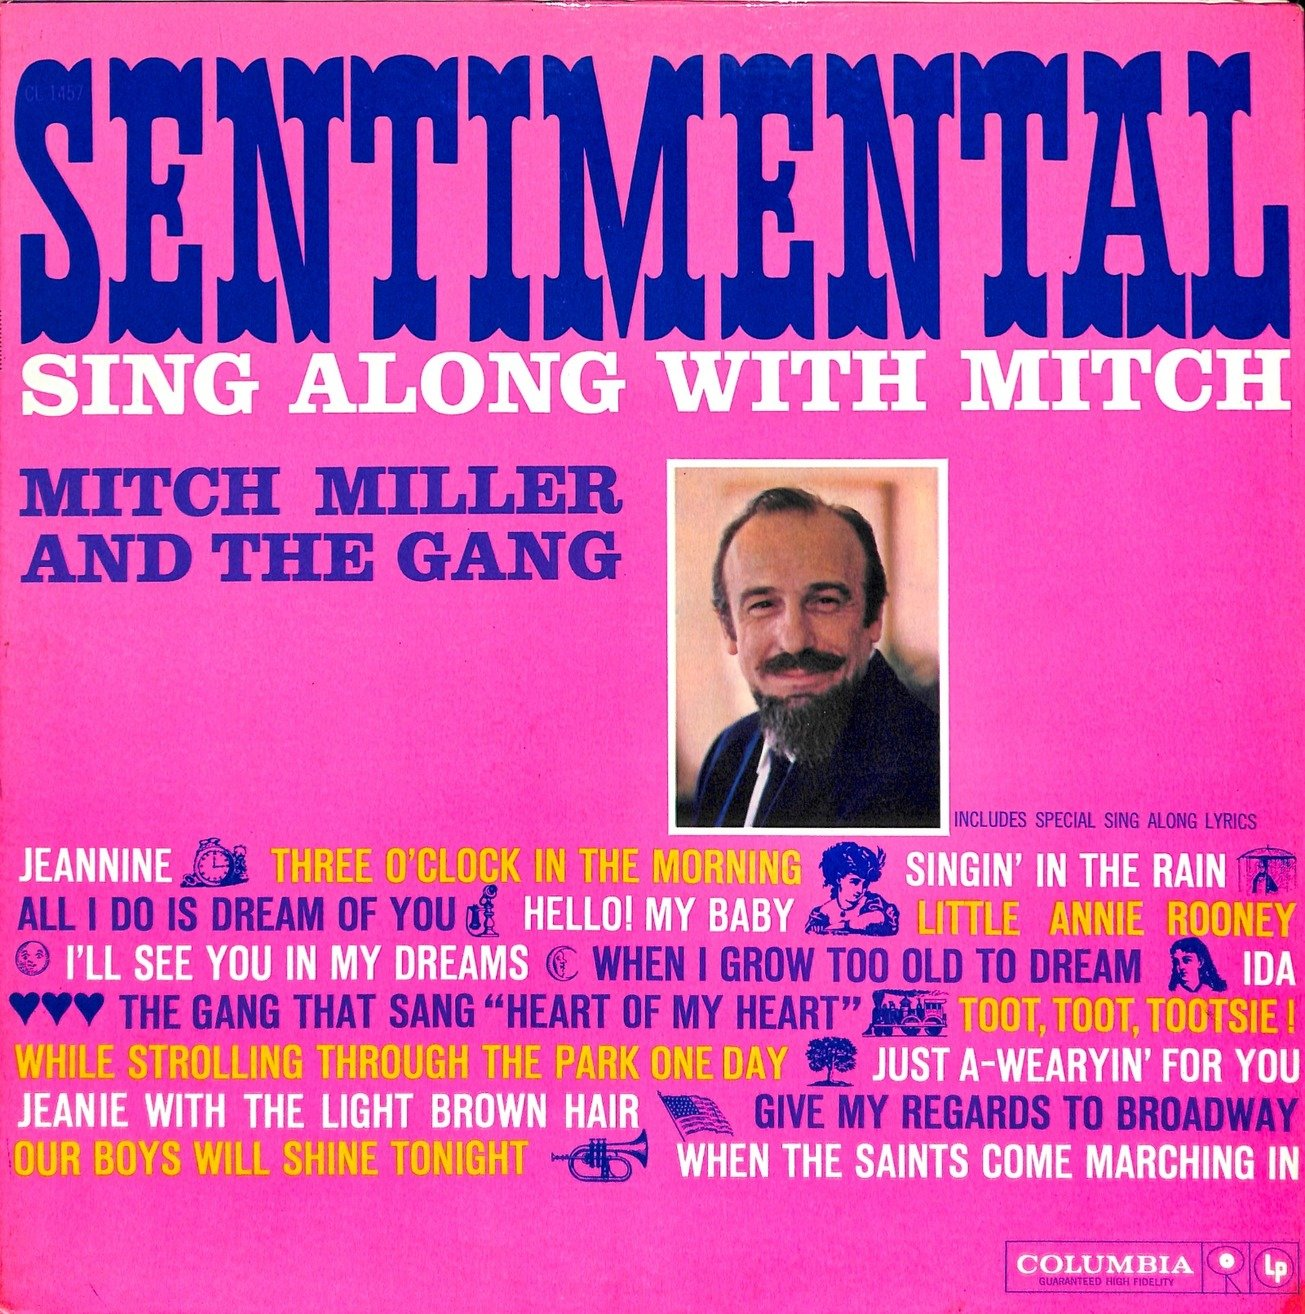 Mitch miller sentimental  28cl 1457 29